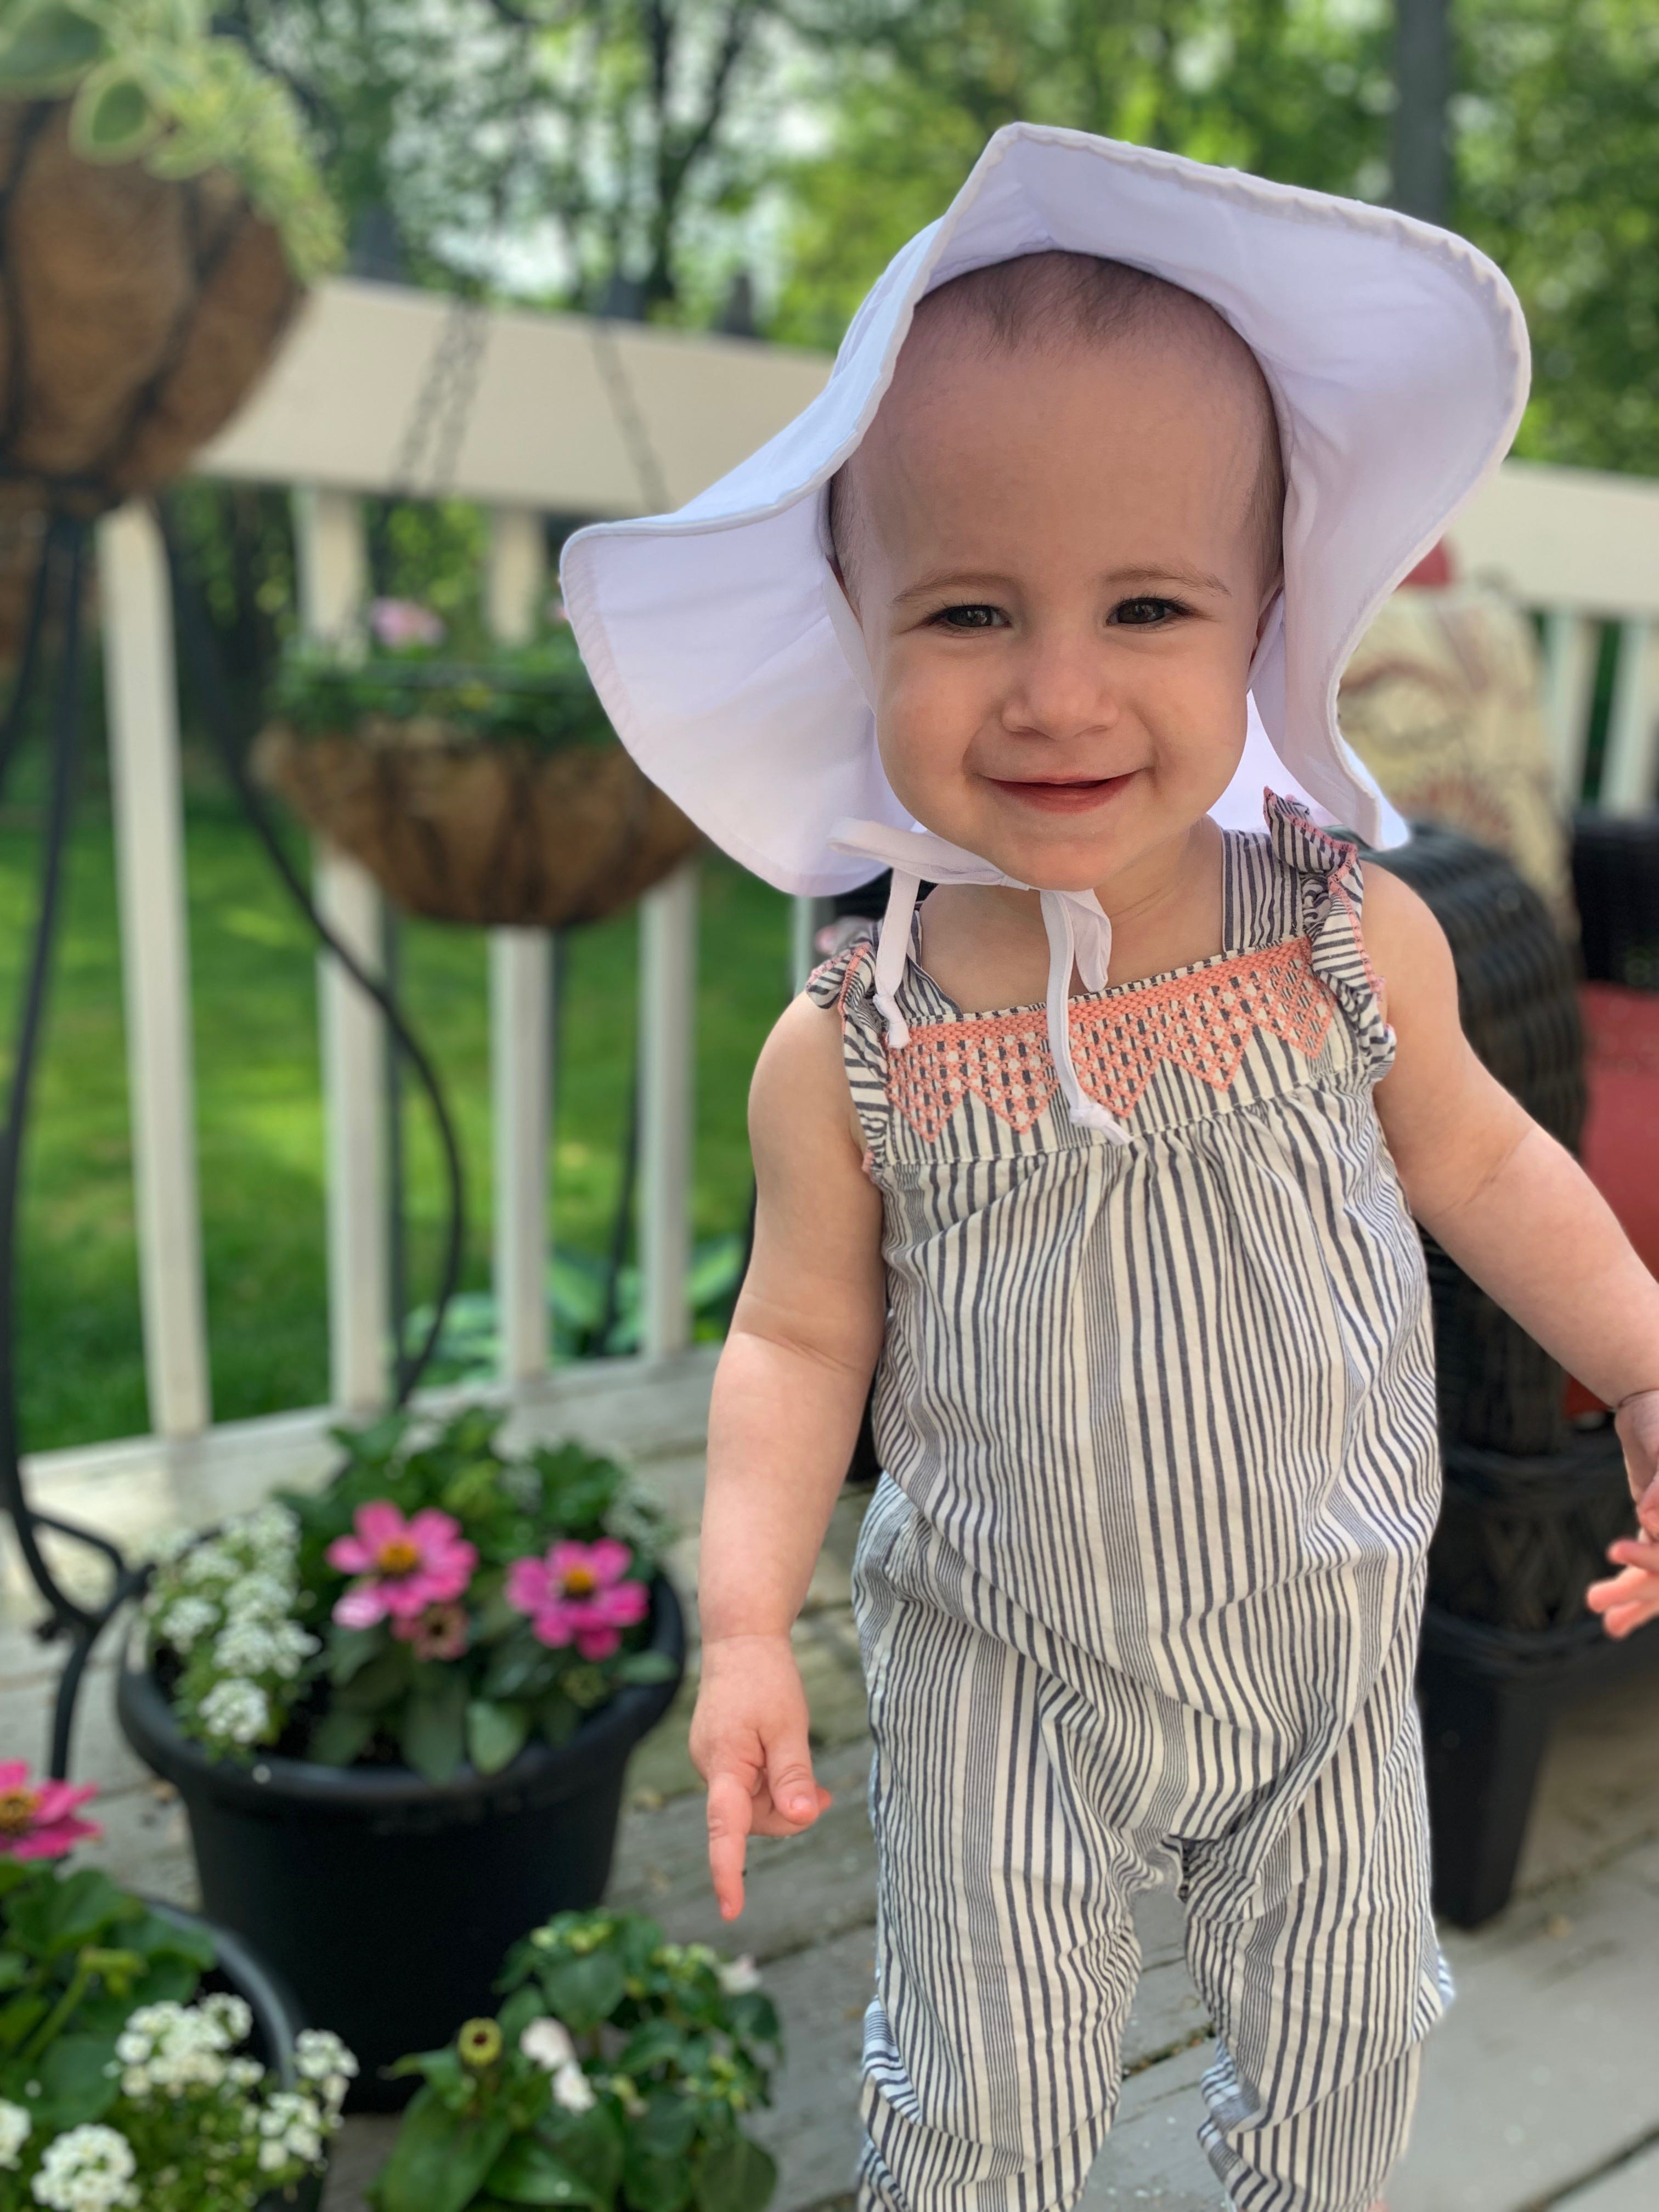 Chloe Wiegand s parents announce lawsuit against Royal Caribbean in toddler s fatal fall